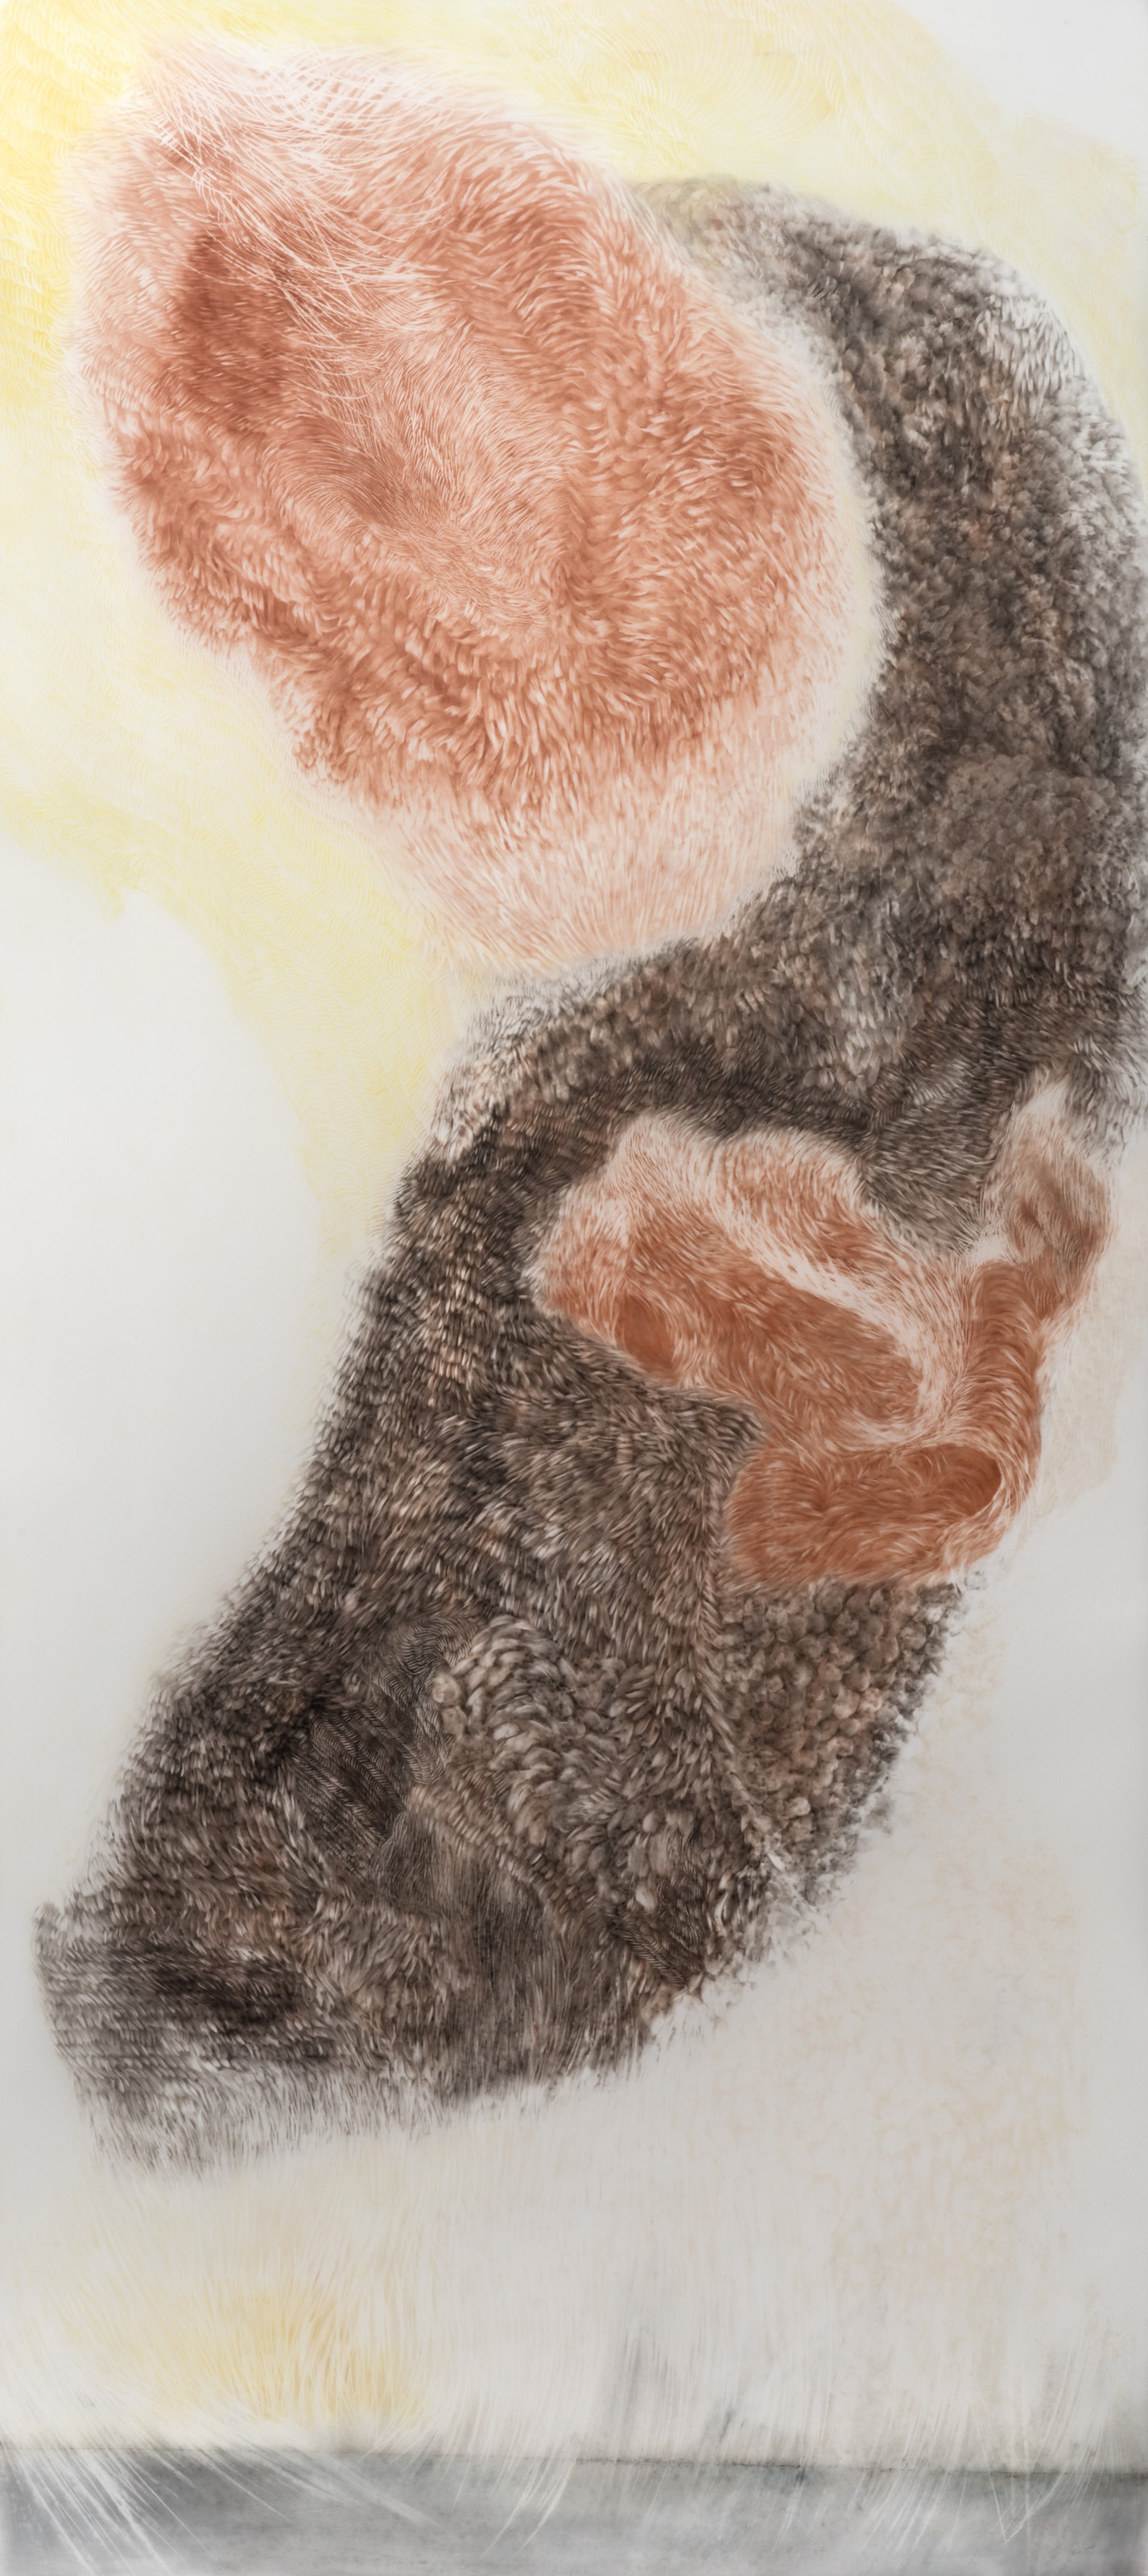 OBSERVED AND RECORDED PERMUTATION OF THE HOLY SPIRIT IX   PASTEL ERASING ON DURA-LAR  34 IN. X 79 IN. unframed  price $4,000